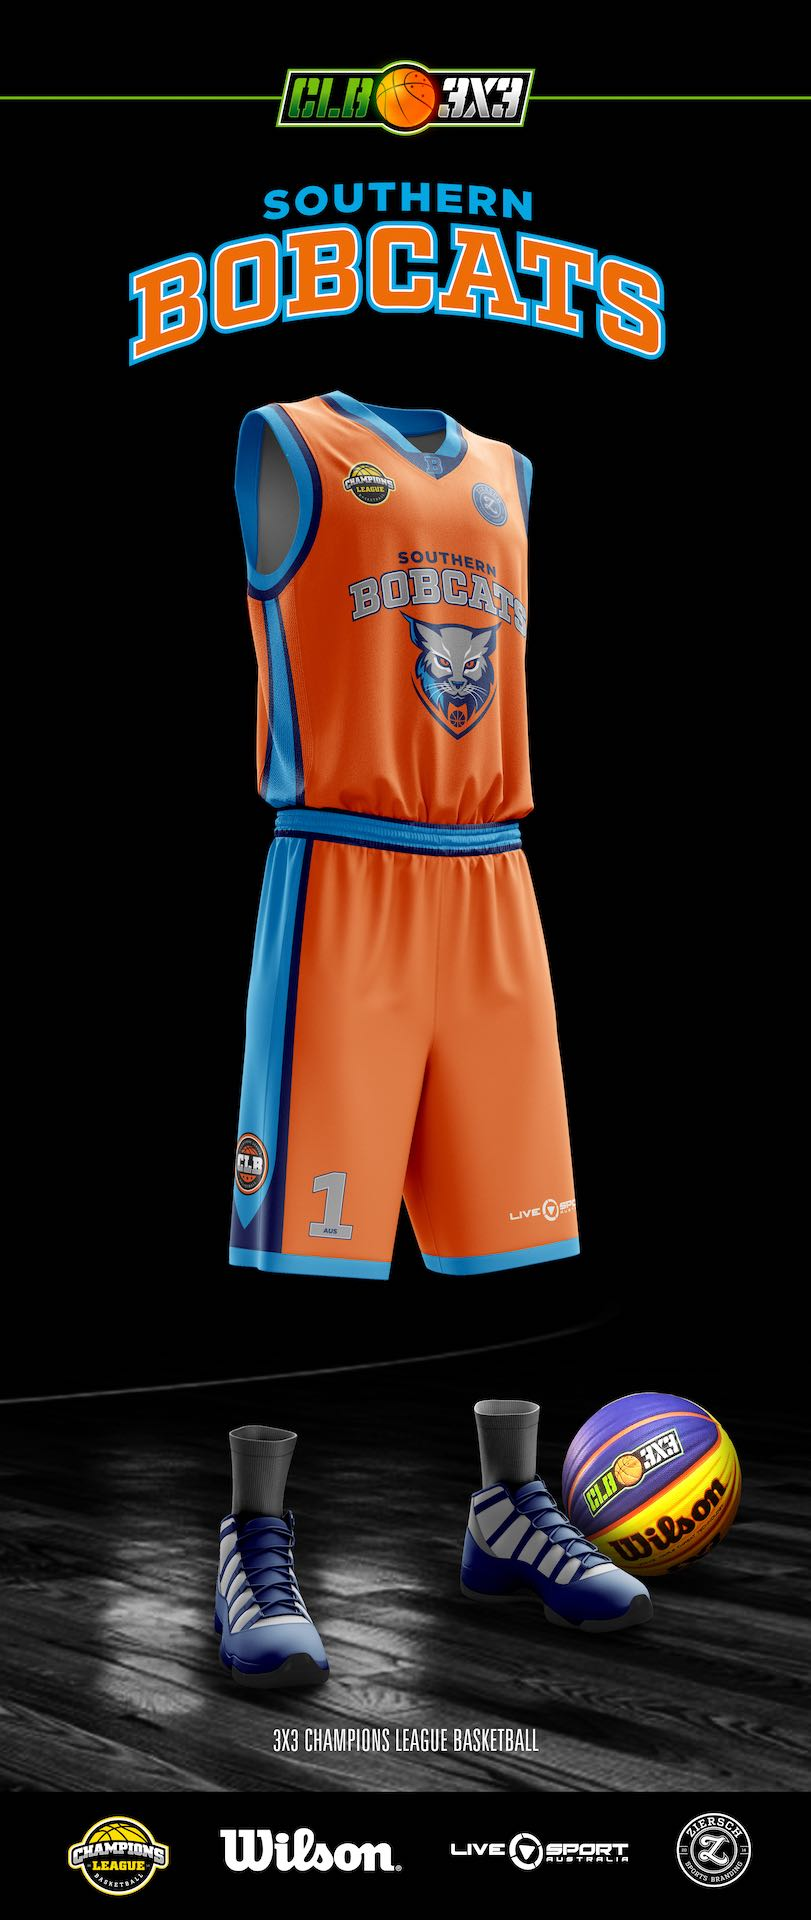 Southern Bobcats Uniform